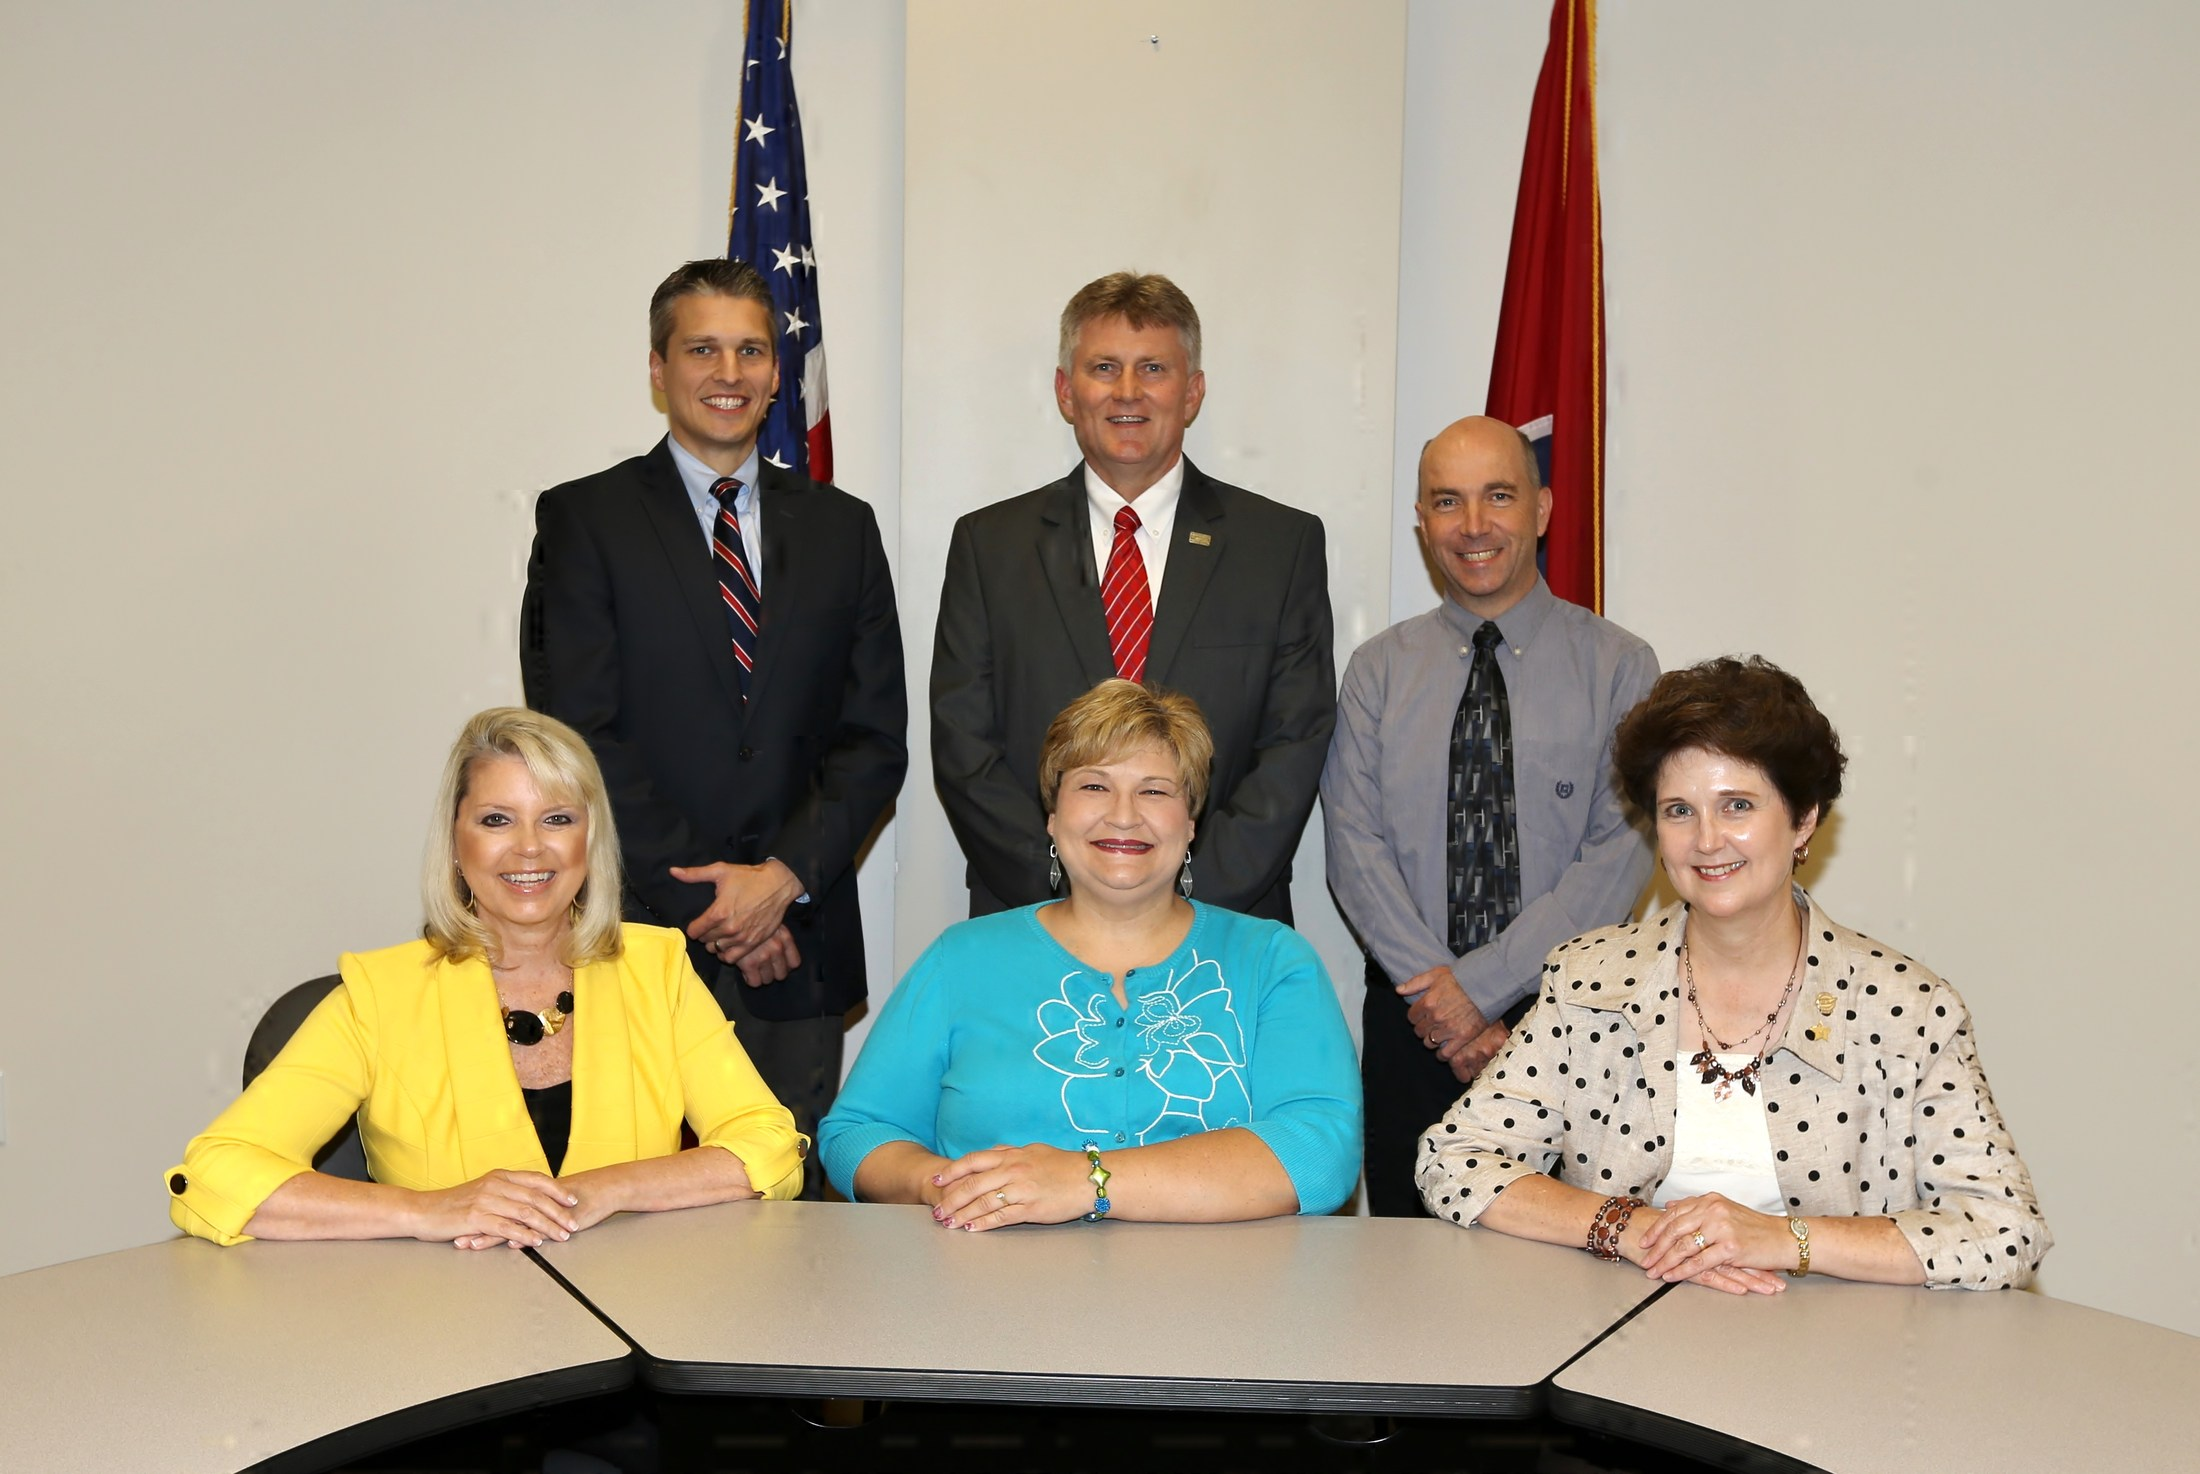 Board of Education Members group photo